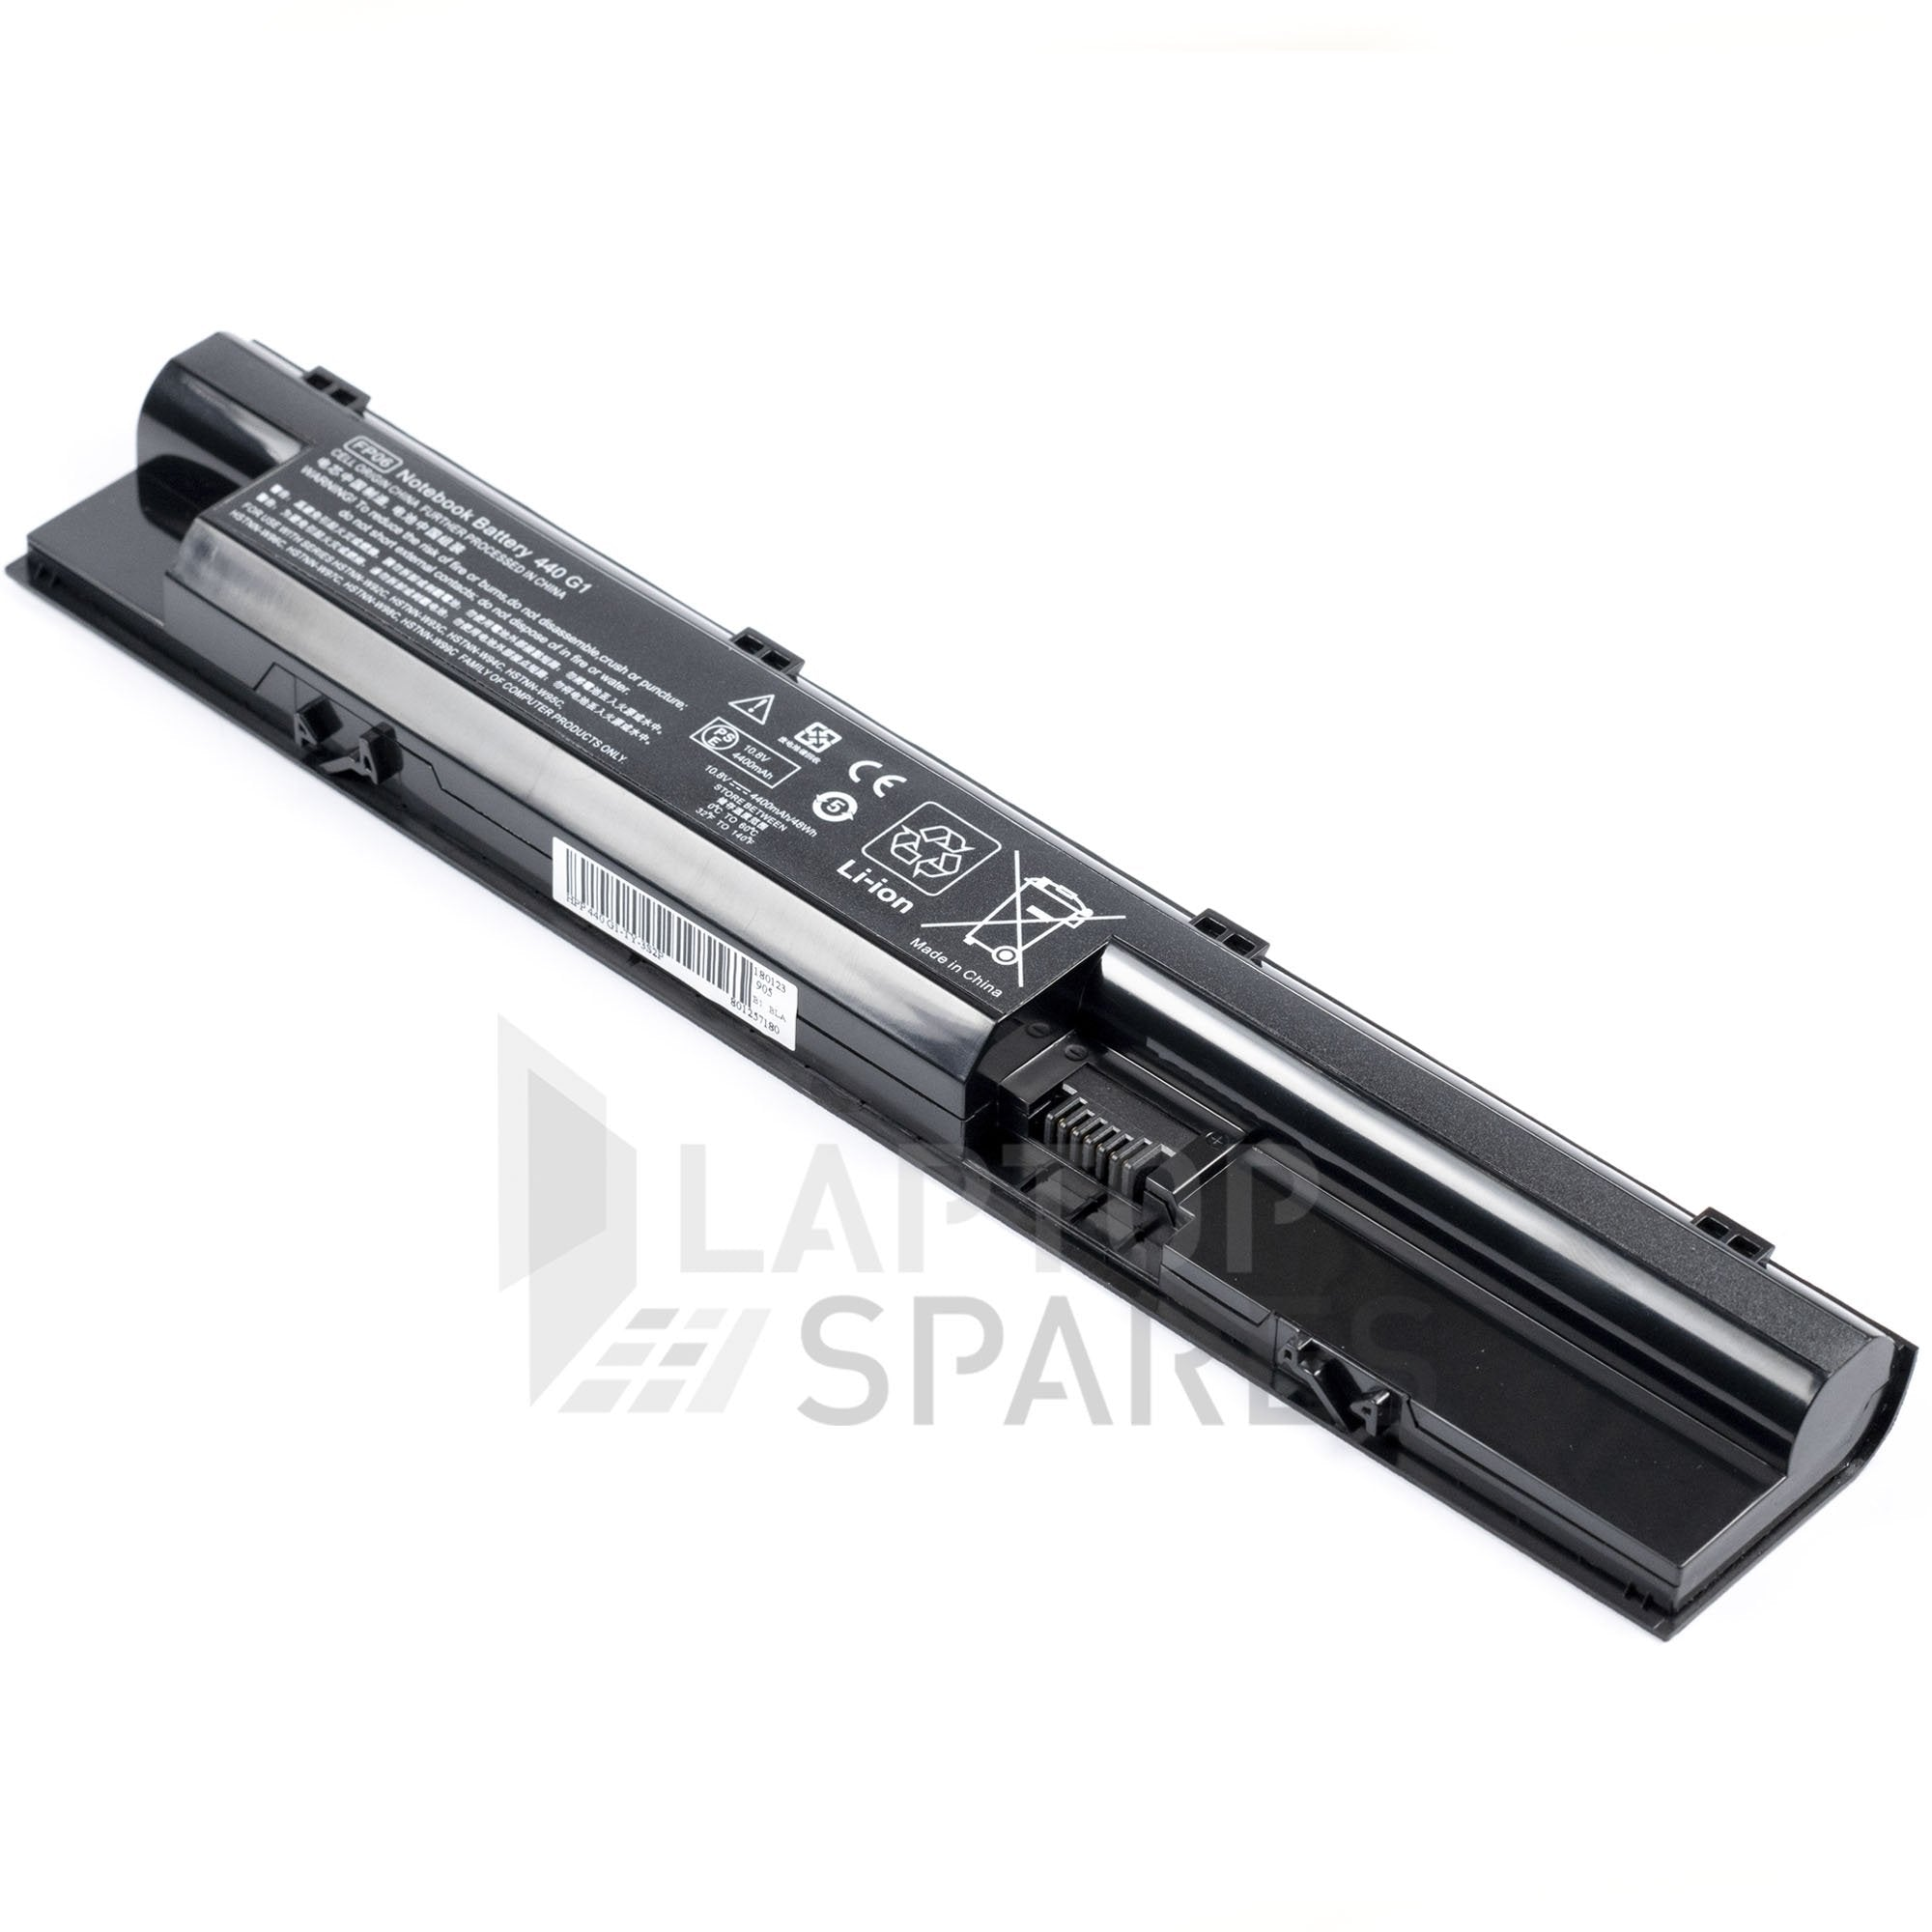 HP ProBook 445 445 G0 445 G1 4400mAh 6 Cell Battery